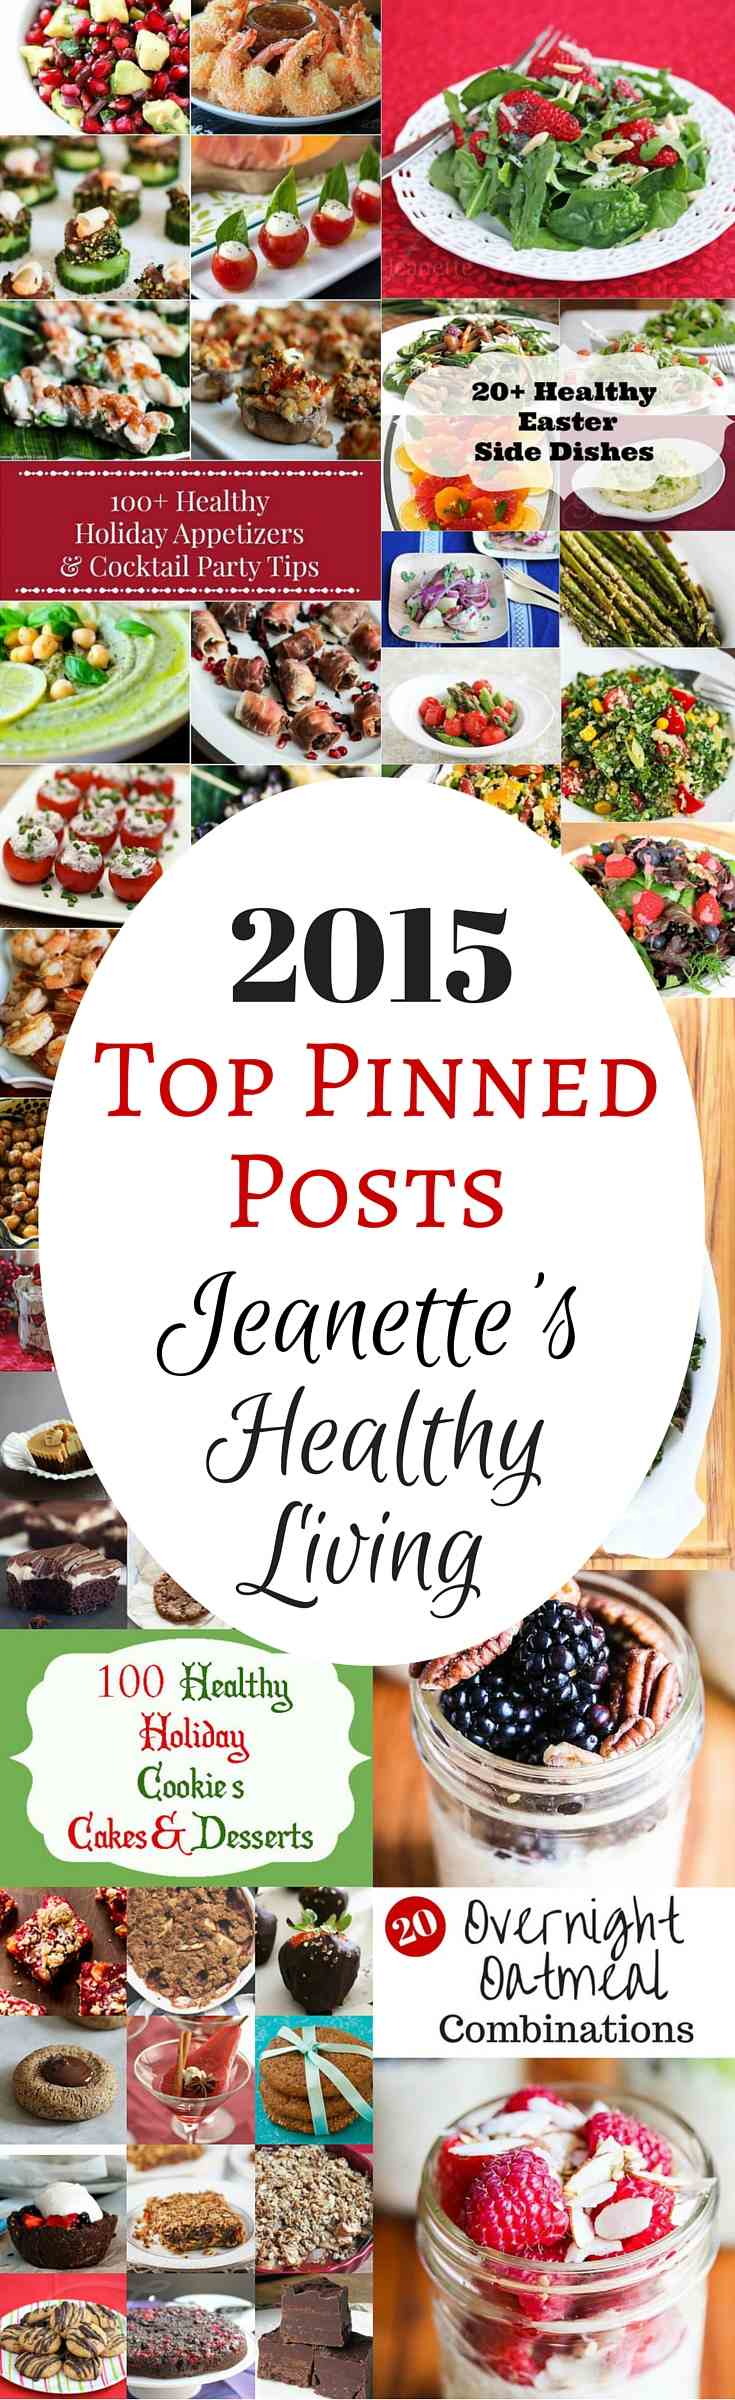 2015 Top Pinned Posts on Jeanette's Healthy Living - pin or bookmark this post for tons of healthy recipe ideas throughout the year